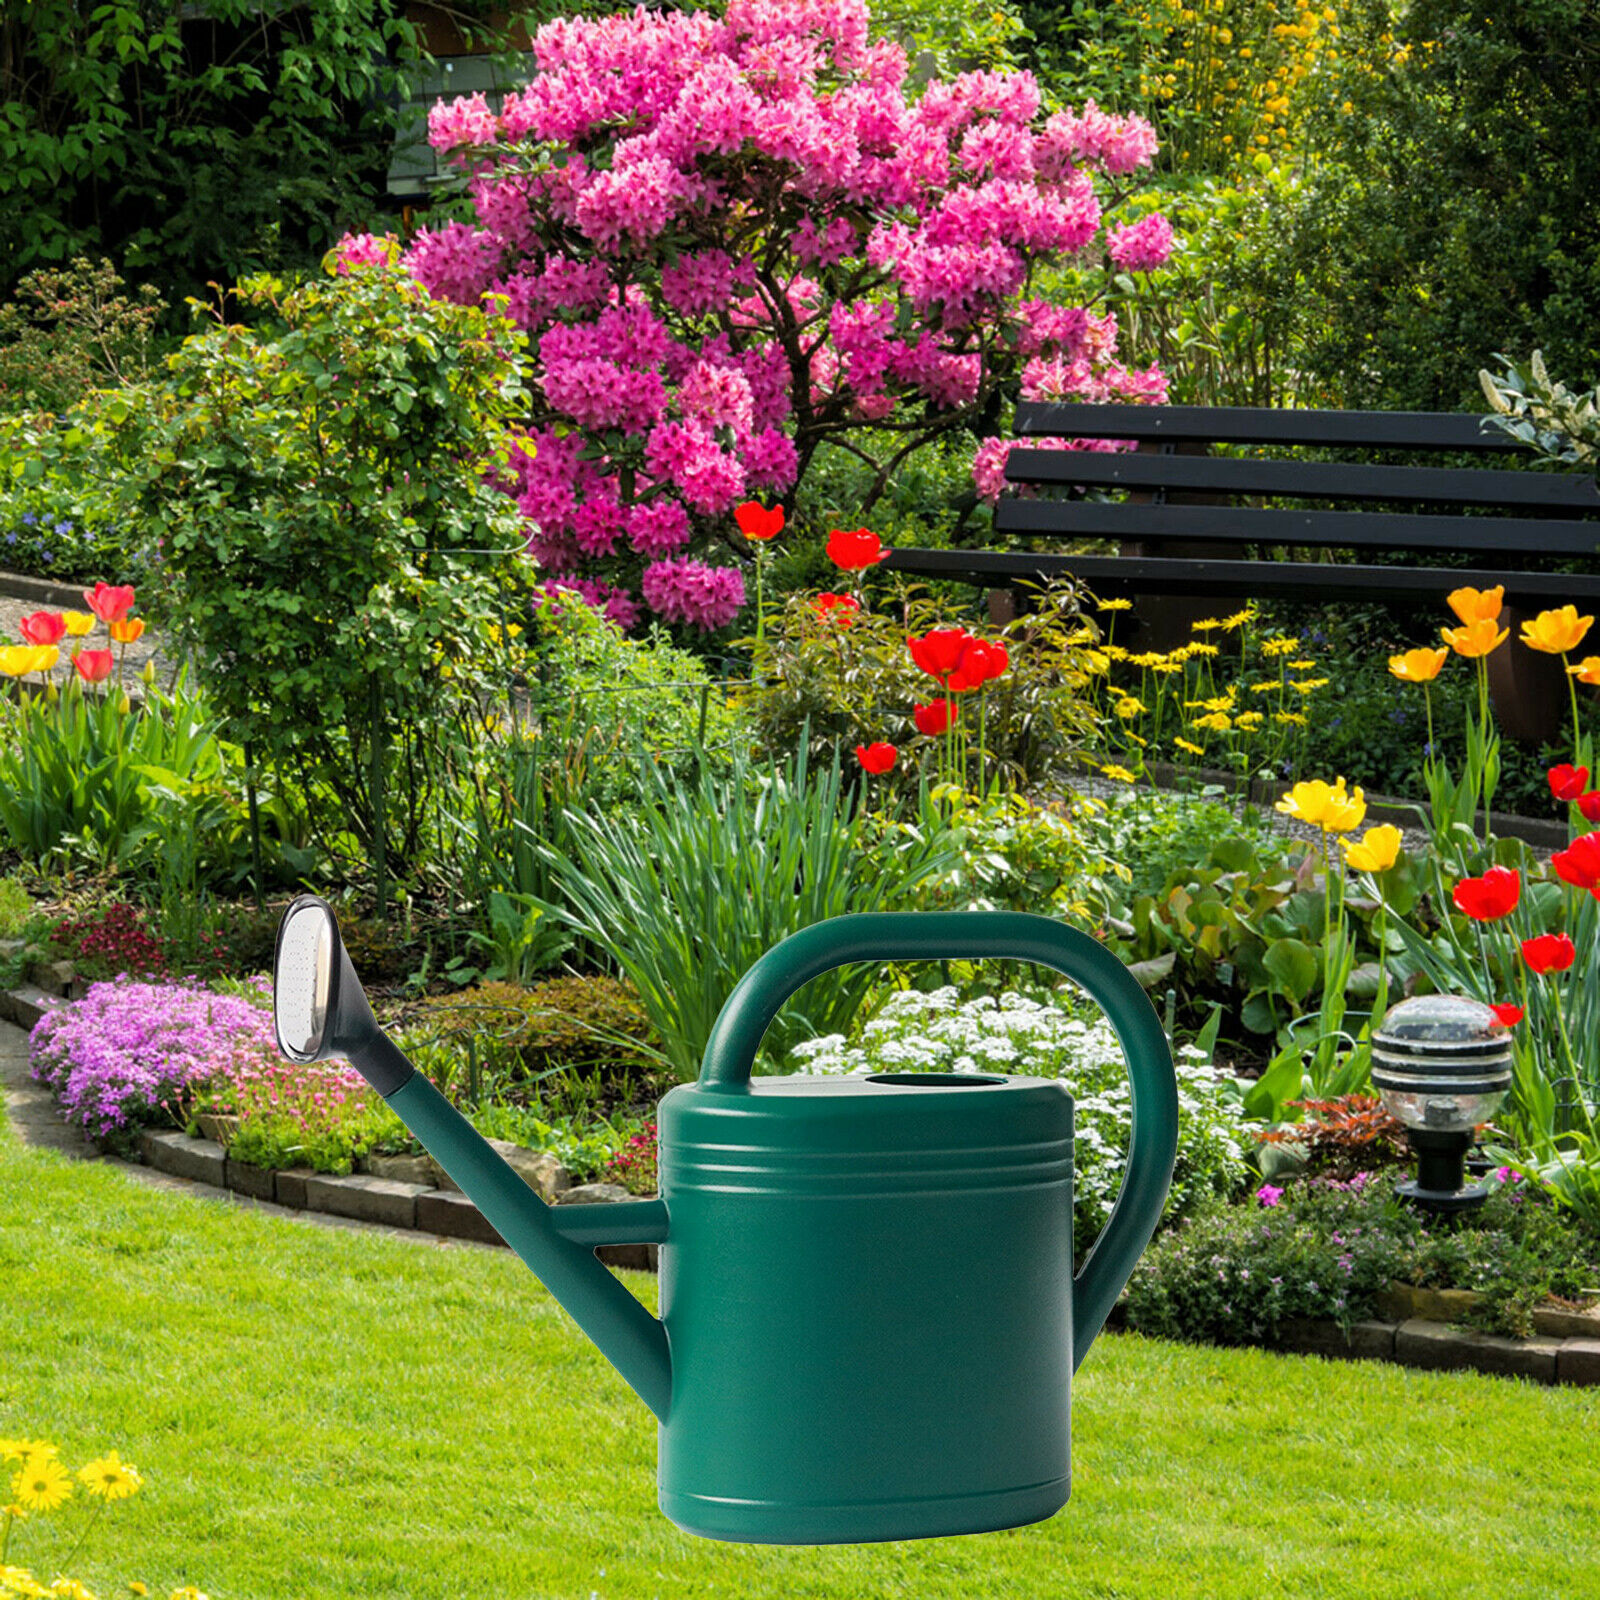 Plastic Watering Pots with Mouth 3L Large Capacity Portable Sprinkled Head